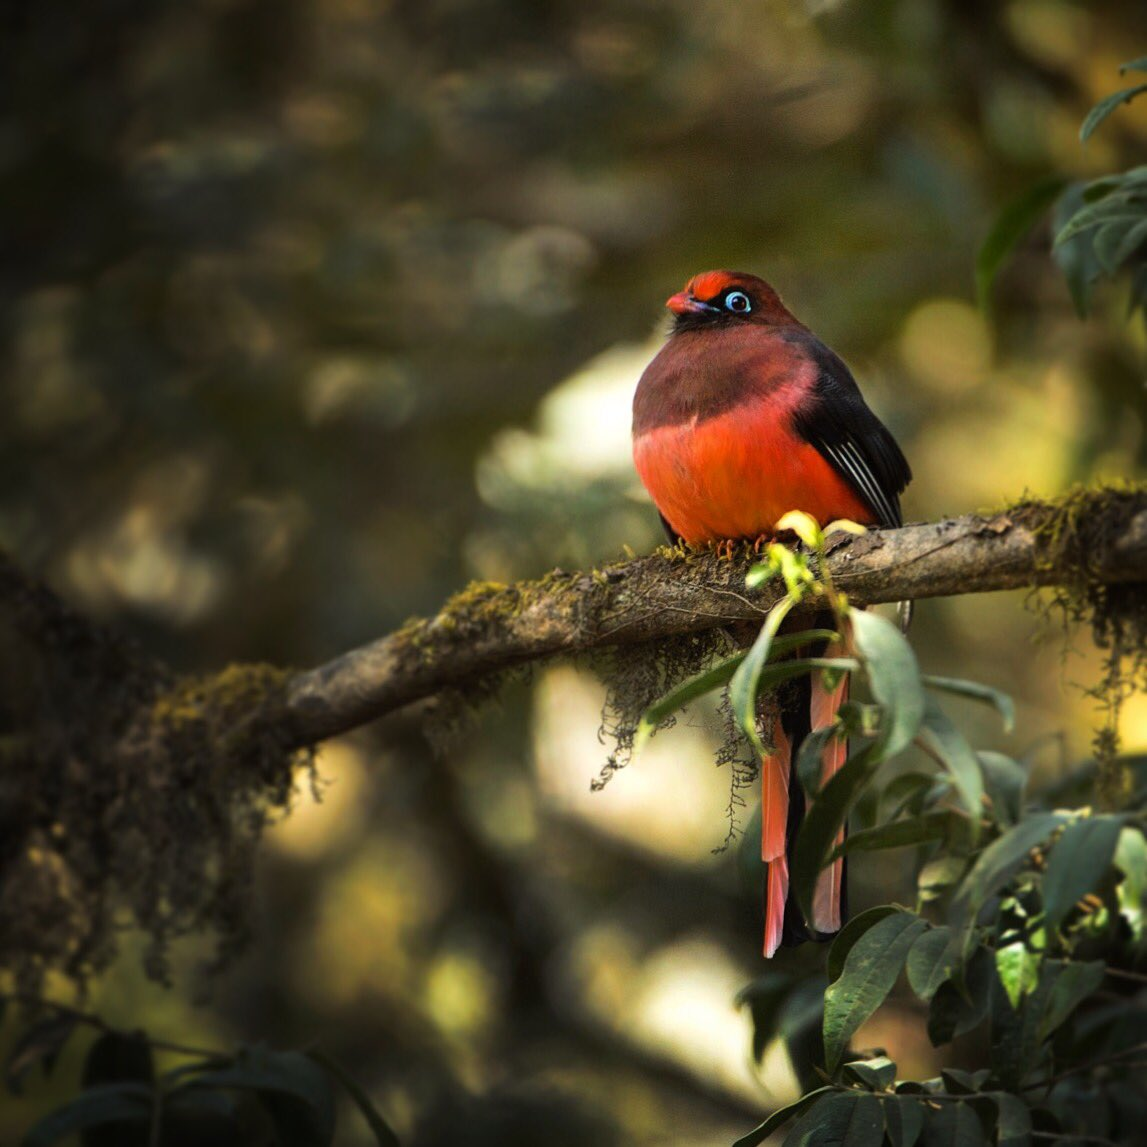 Ward's Trogon. One of the rare and elusive birds from eastern Himalayas  #brahmaputra https://t.co/E3XnciQldP